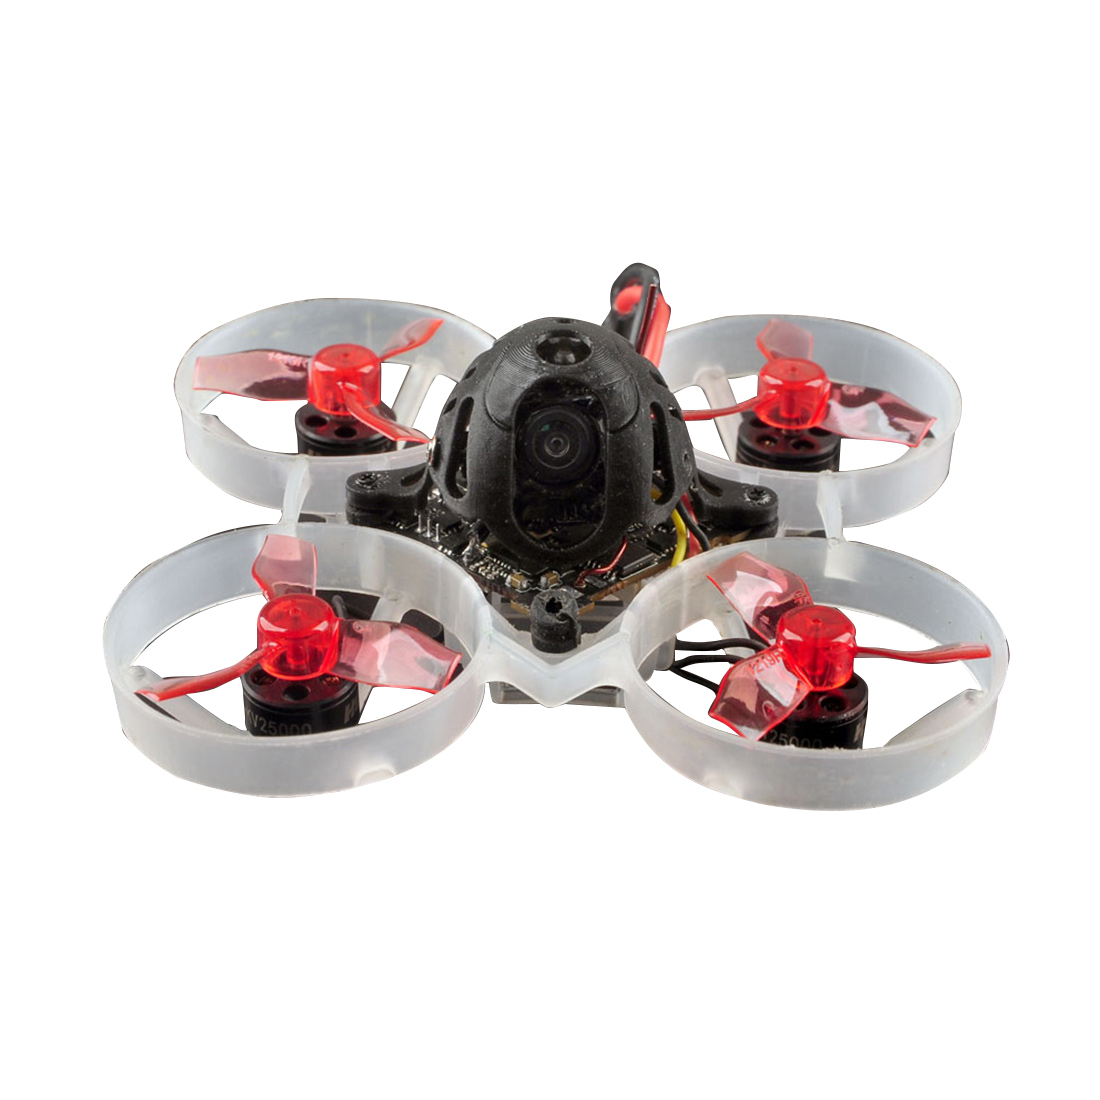 Happymodel Mobula6 Mobula 6 1S 65mm Brushless Bwhoop FPV Racing Drone with <font><b>4in1</b></font> Crazybee F4 Lite Runcam Nano3 Preorder RC Dron image